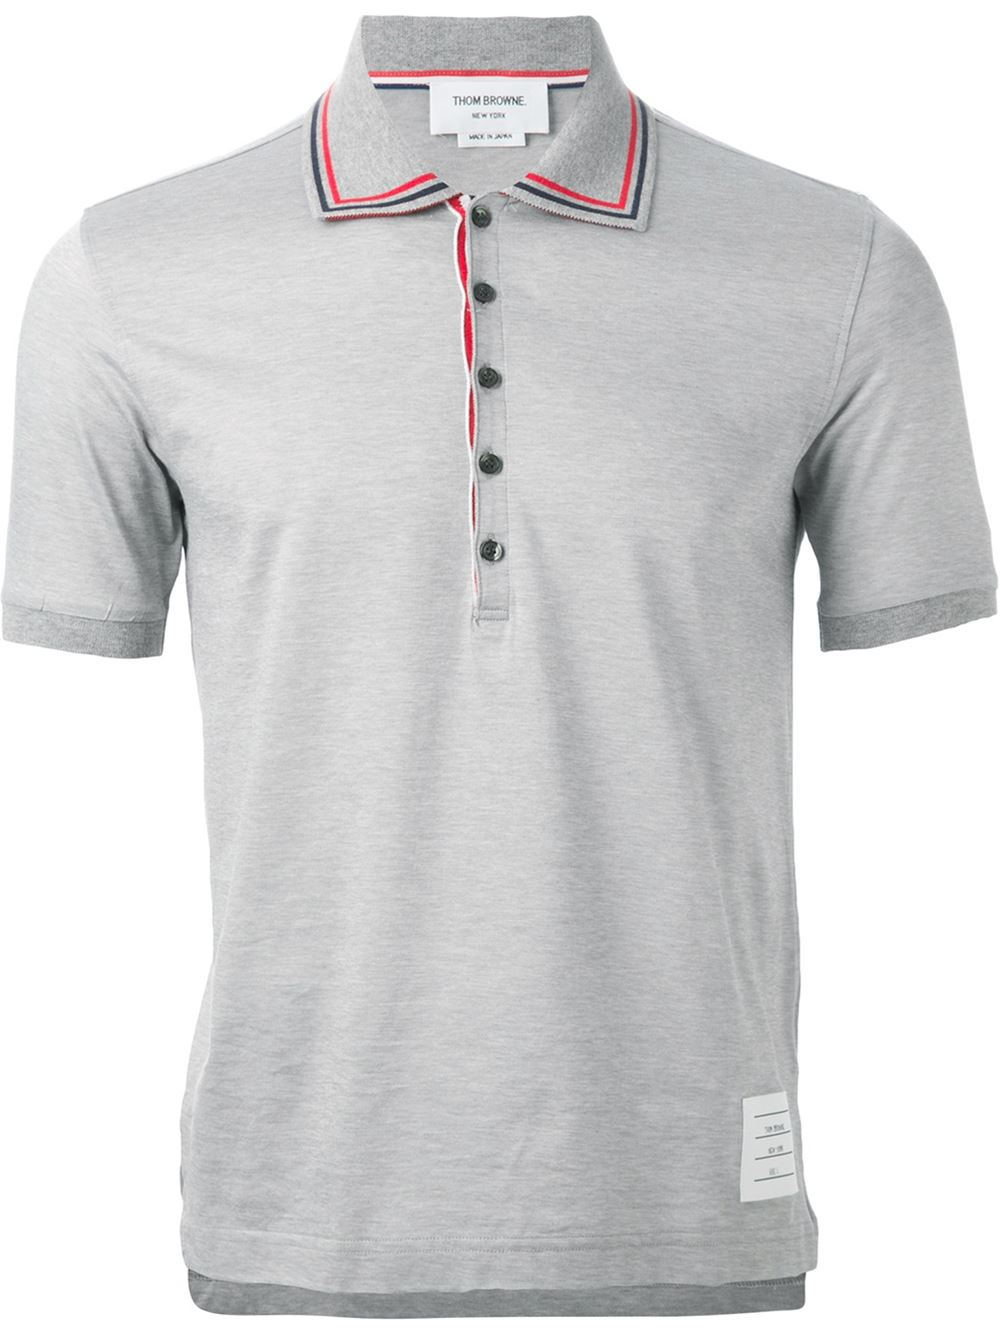 Lyst thom browne polo shirt in gray for men for Thom browne t shirt